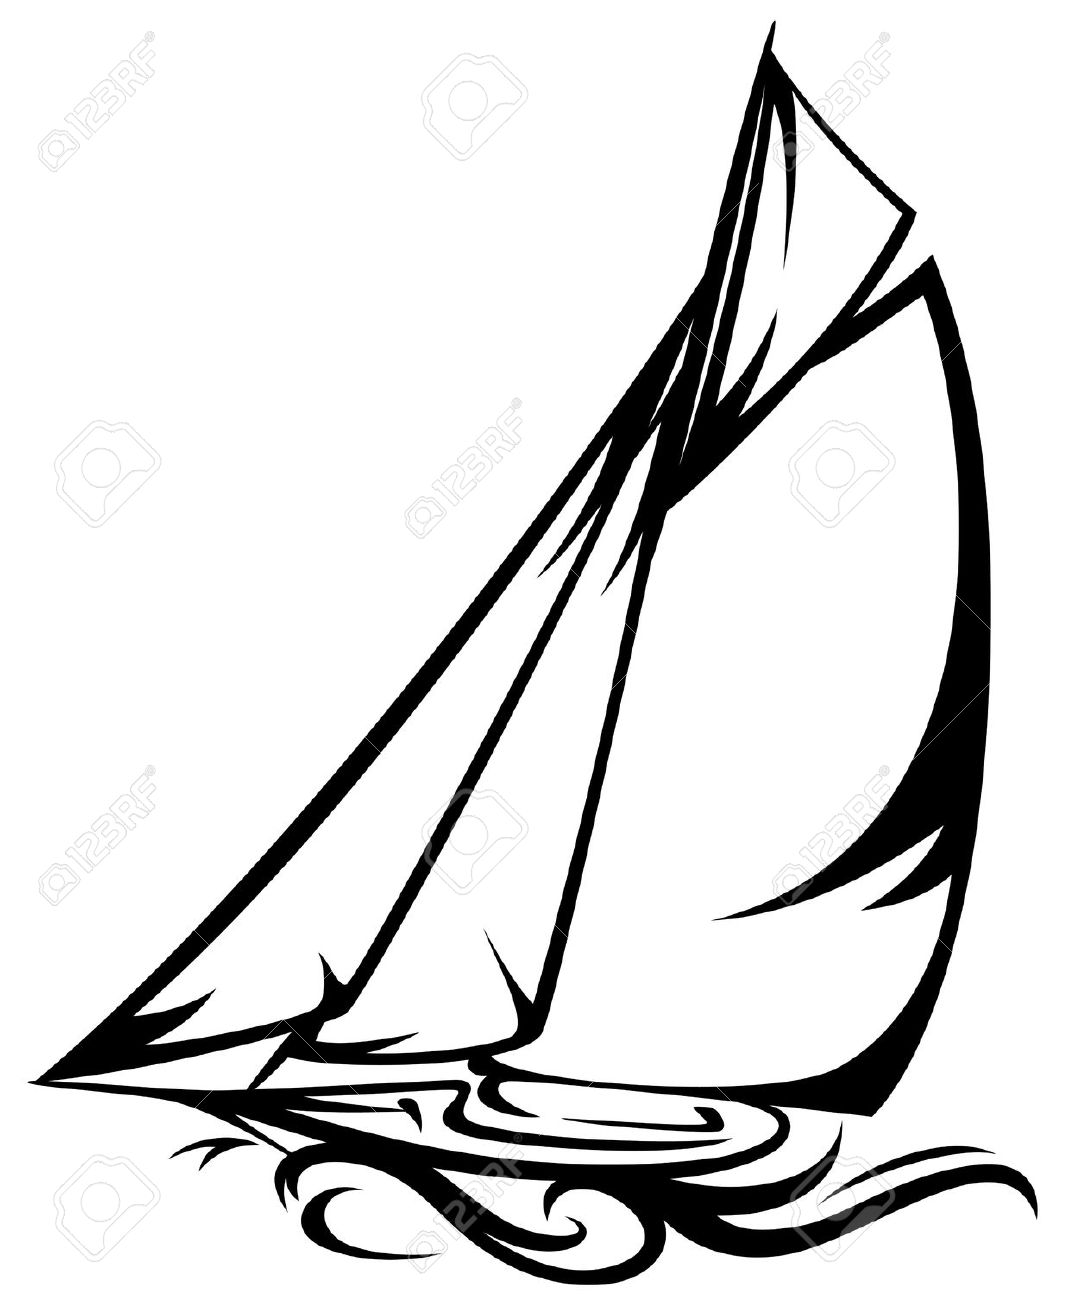 1075x1300 Sailing Boat Clipart Line Drawing